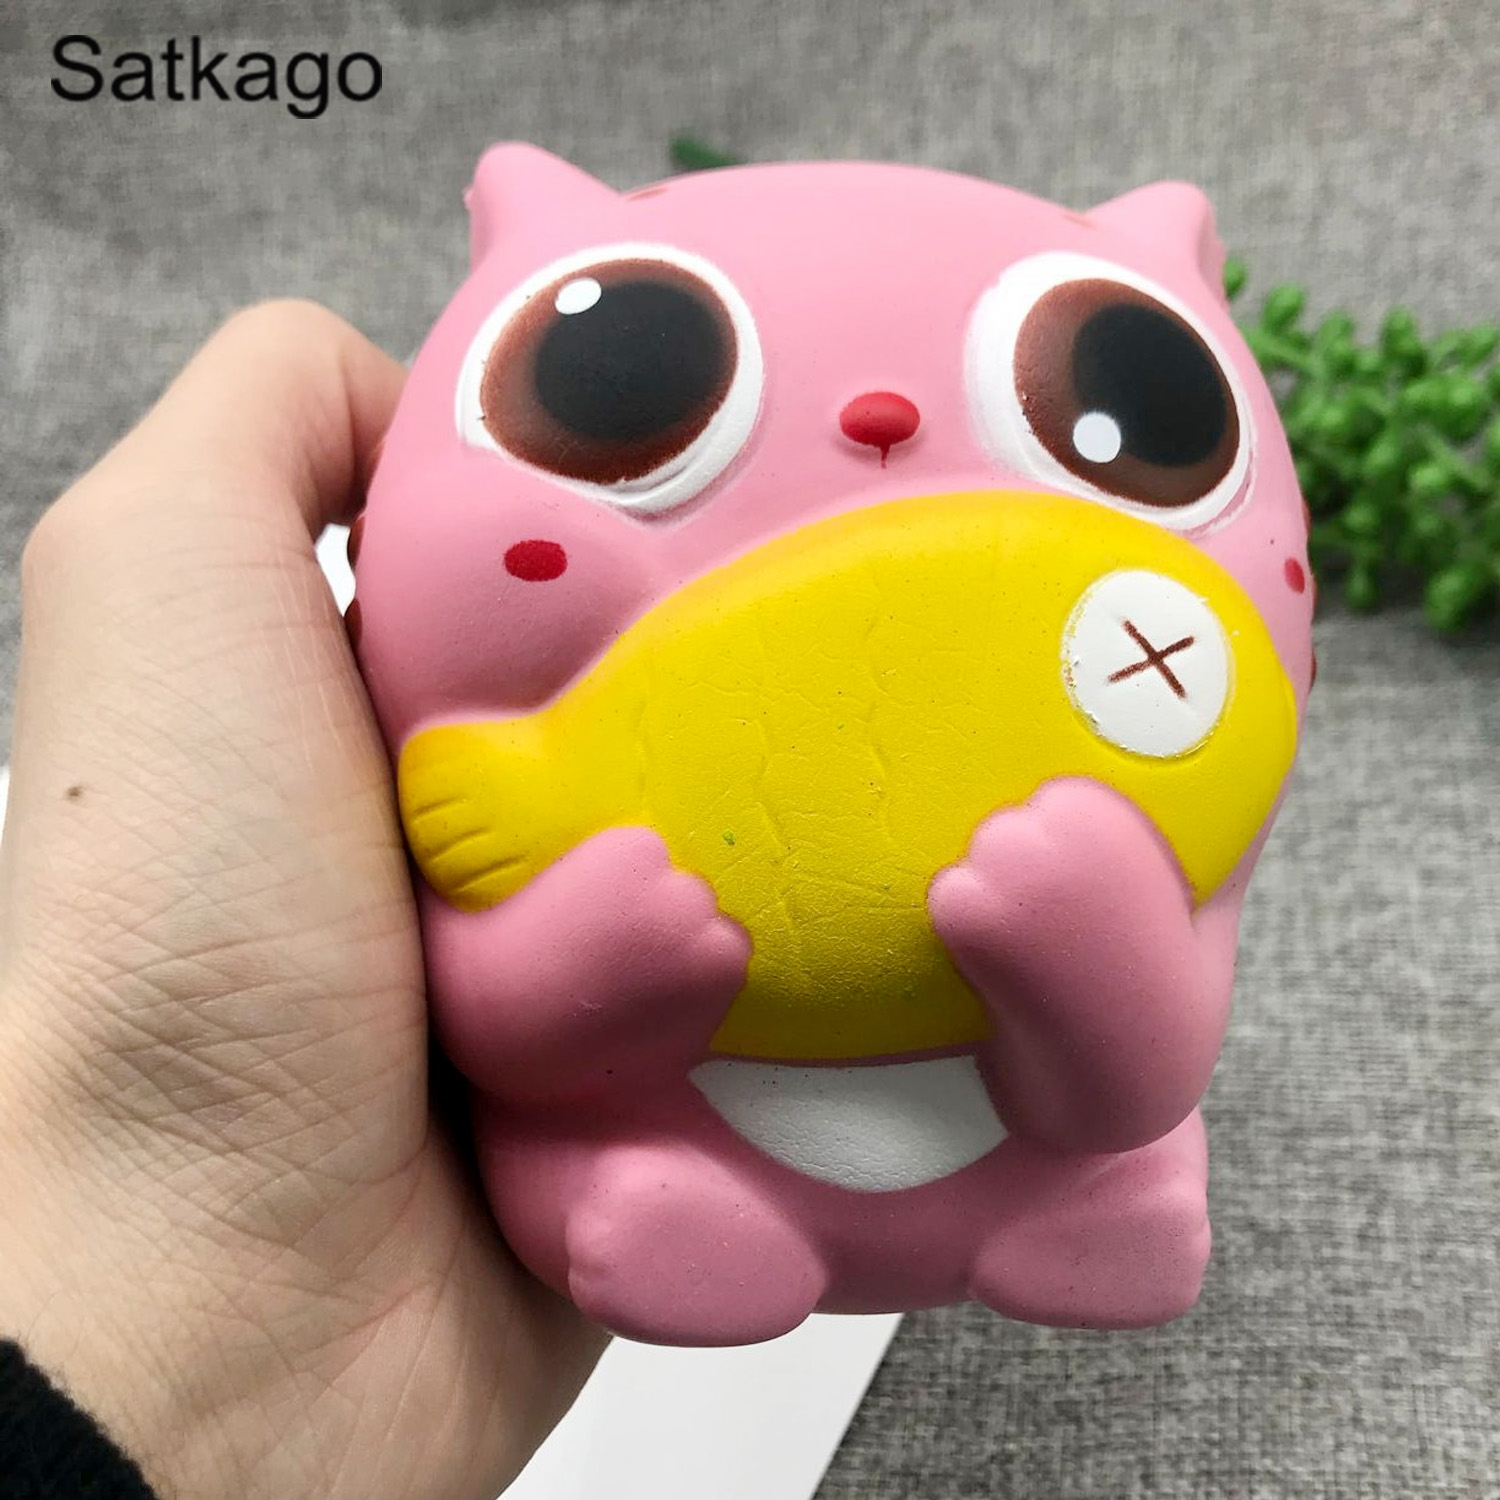 Squishy Cute Kawaii Soft Cotton Candy Toy Slow Rising For Children Ocean Beauty Set Mainan Anak Oct84004ab Multicolor Squishies Cat Kids Adults Relieves Stress Anxiety